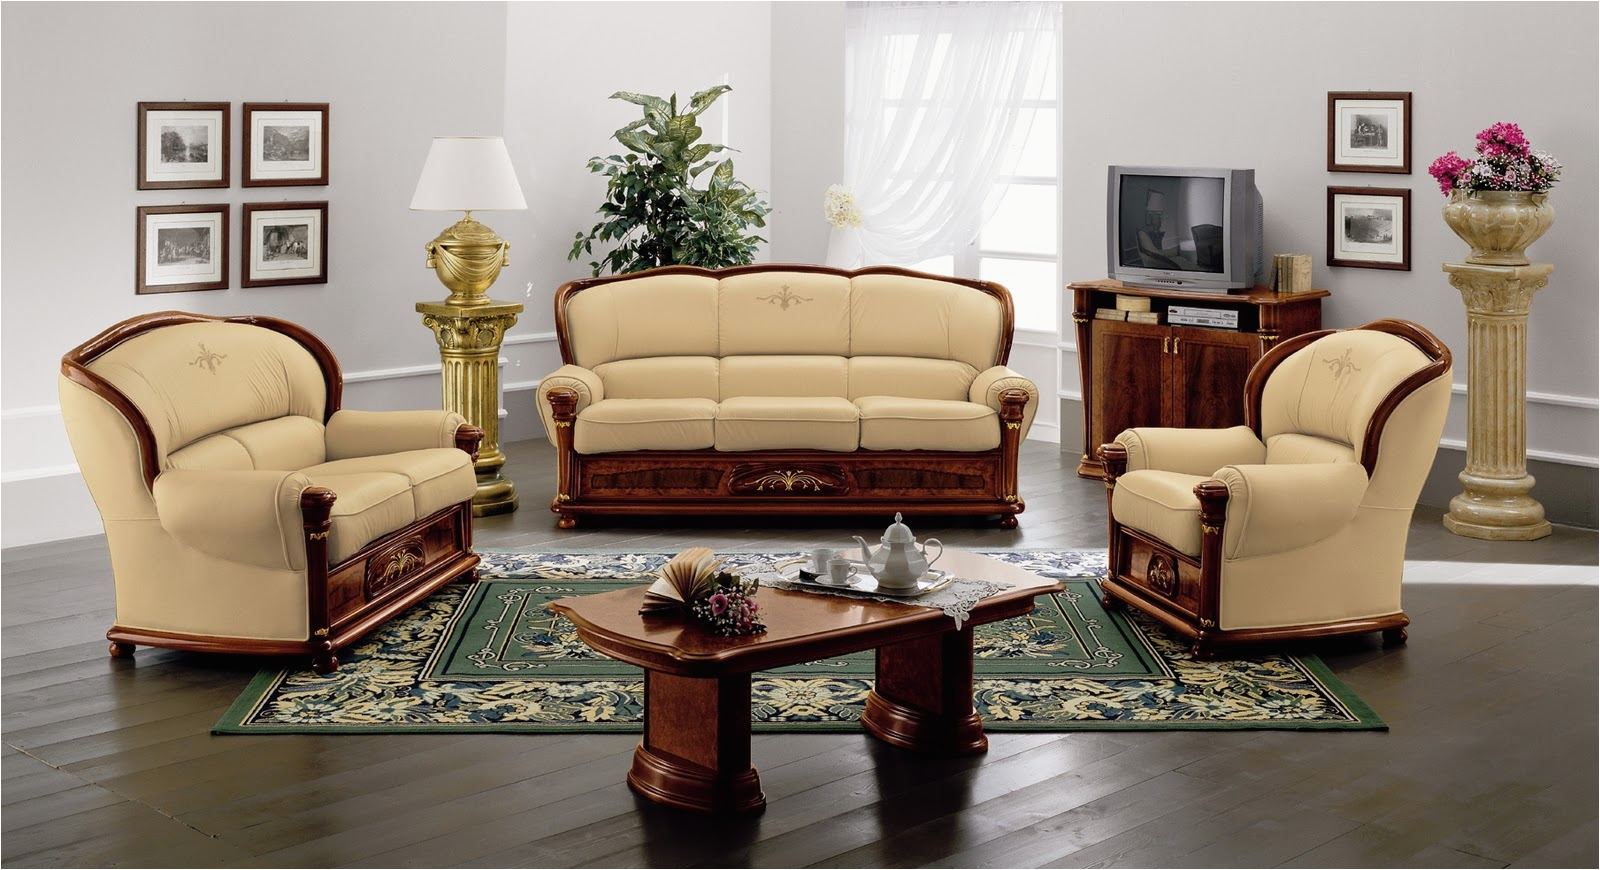 best sofa set designs living room furniture deals couch for sale room interior and decoration